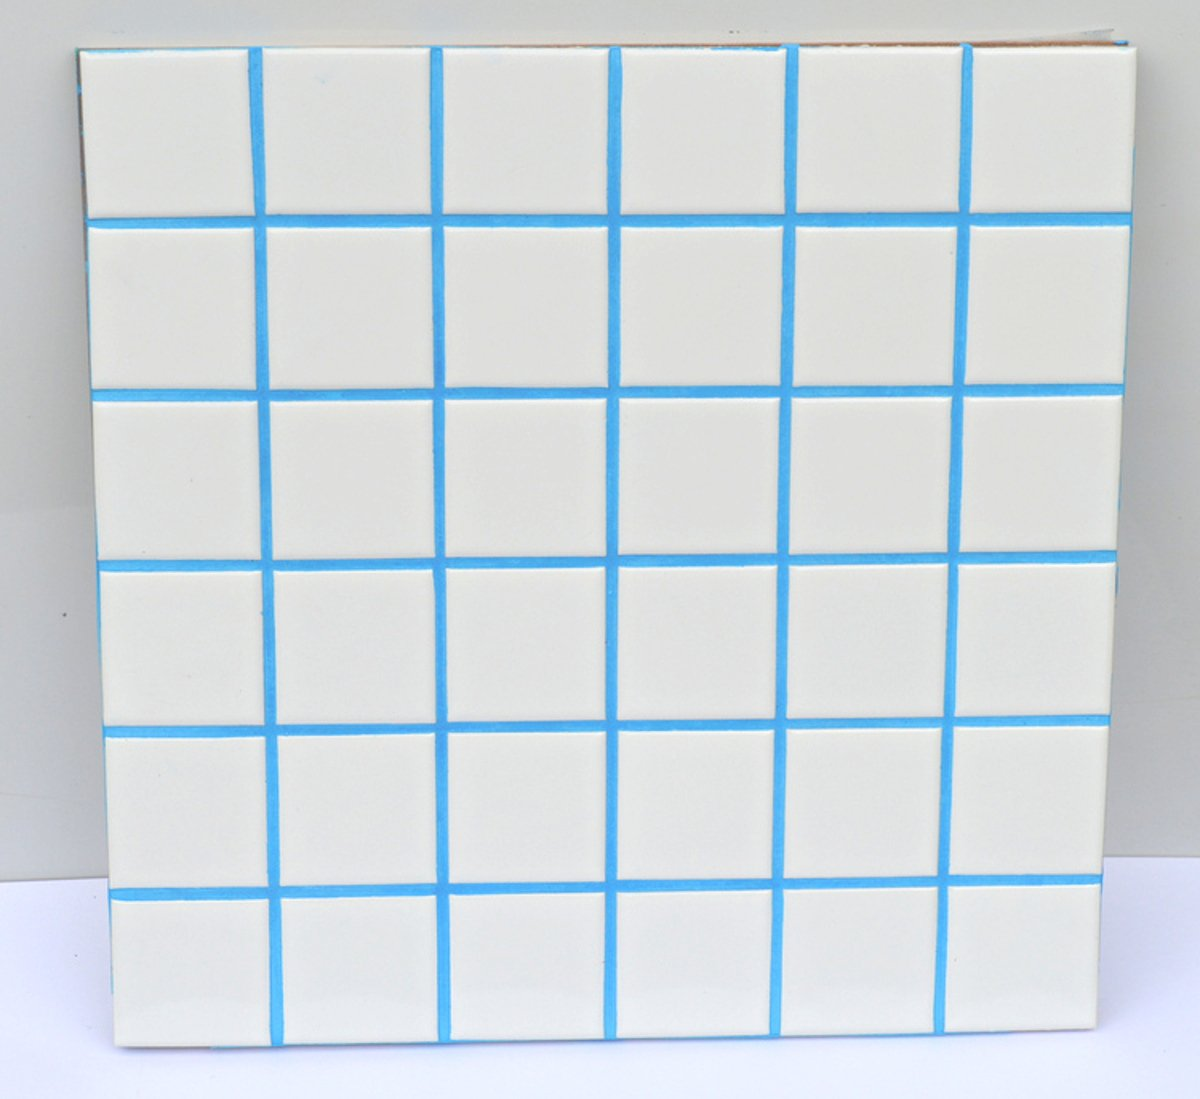 Sky Blue Unsanded Tile Grout - 5 lbs - with Blue Pigment in The Mix